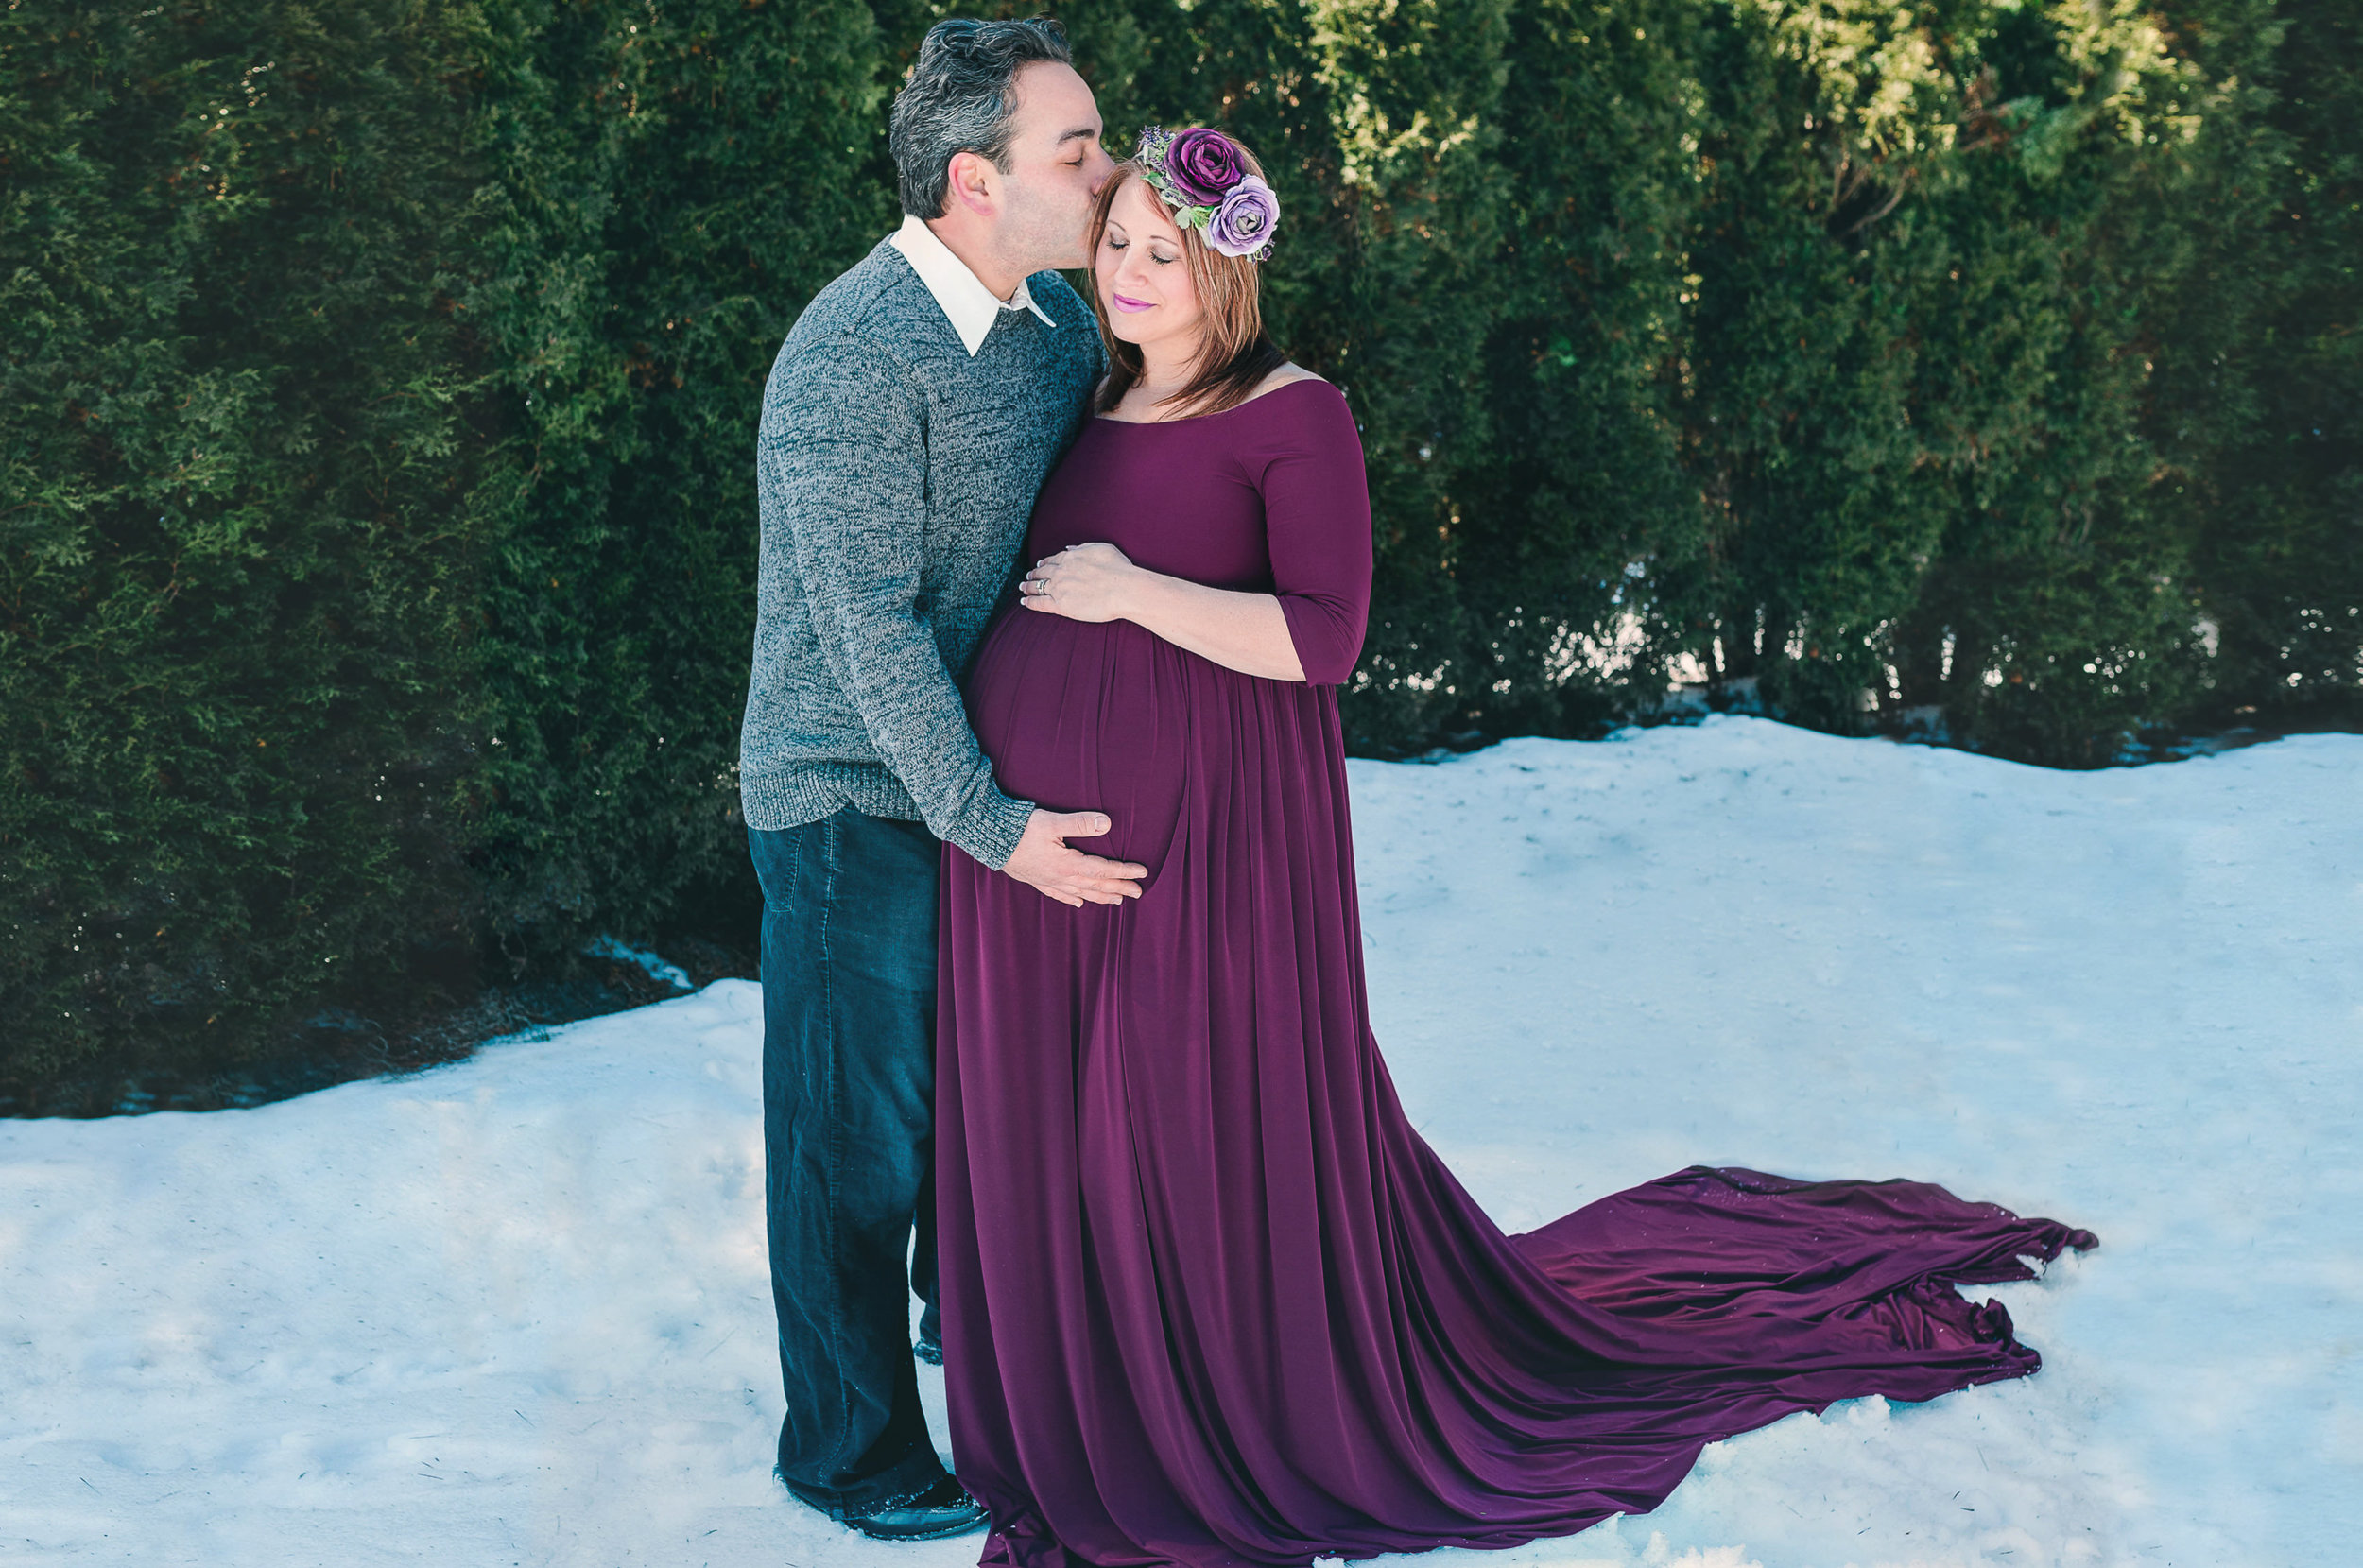 Johnstown State College Pittsburgh PA maternity photos photographer (12).jpg